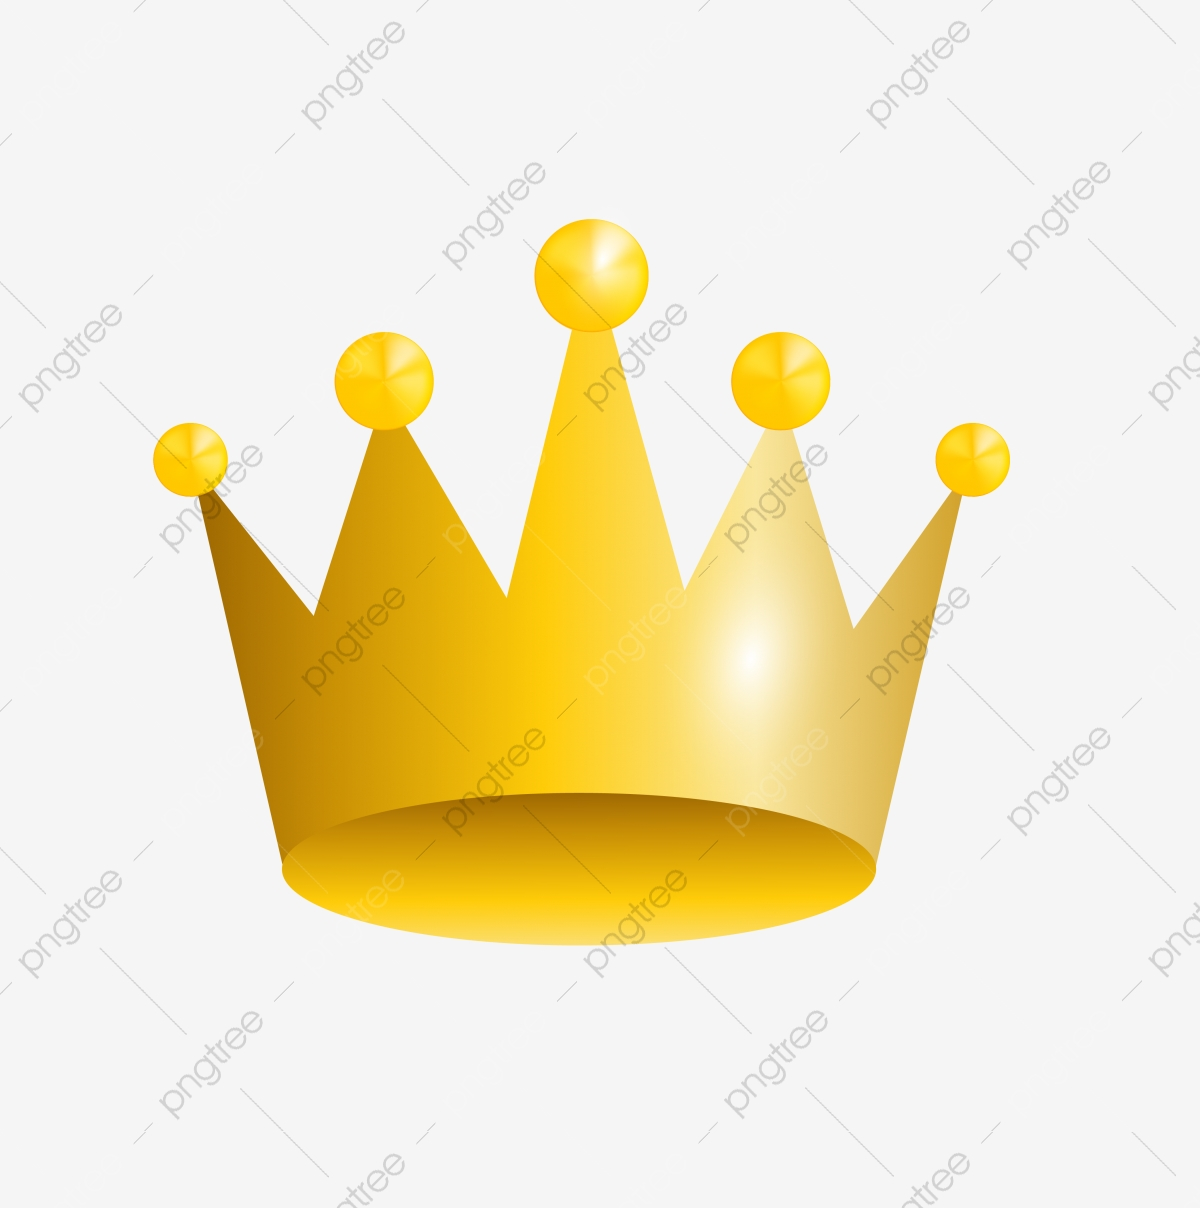 Small Crown Png Images Vector And Psd Files Free Download On Pngtree Flat vector jewelry for monarch. https pngtree com freepng vector cartoon metal crown 4697045 html